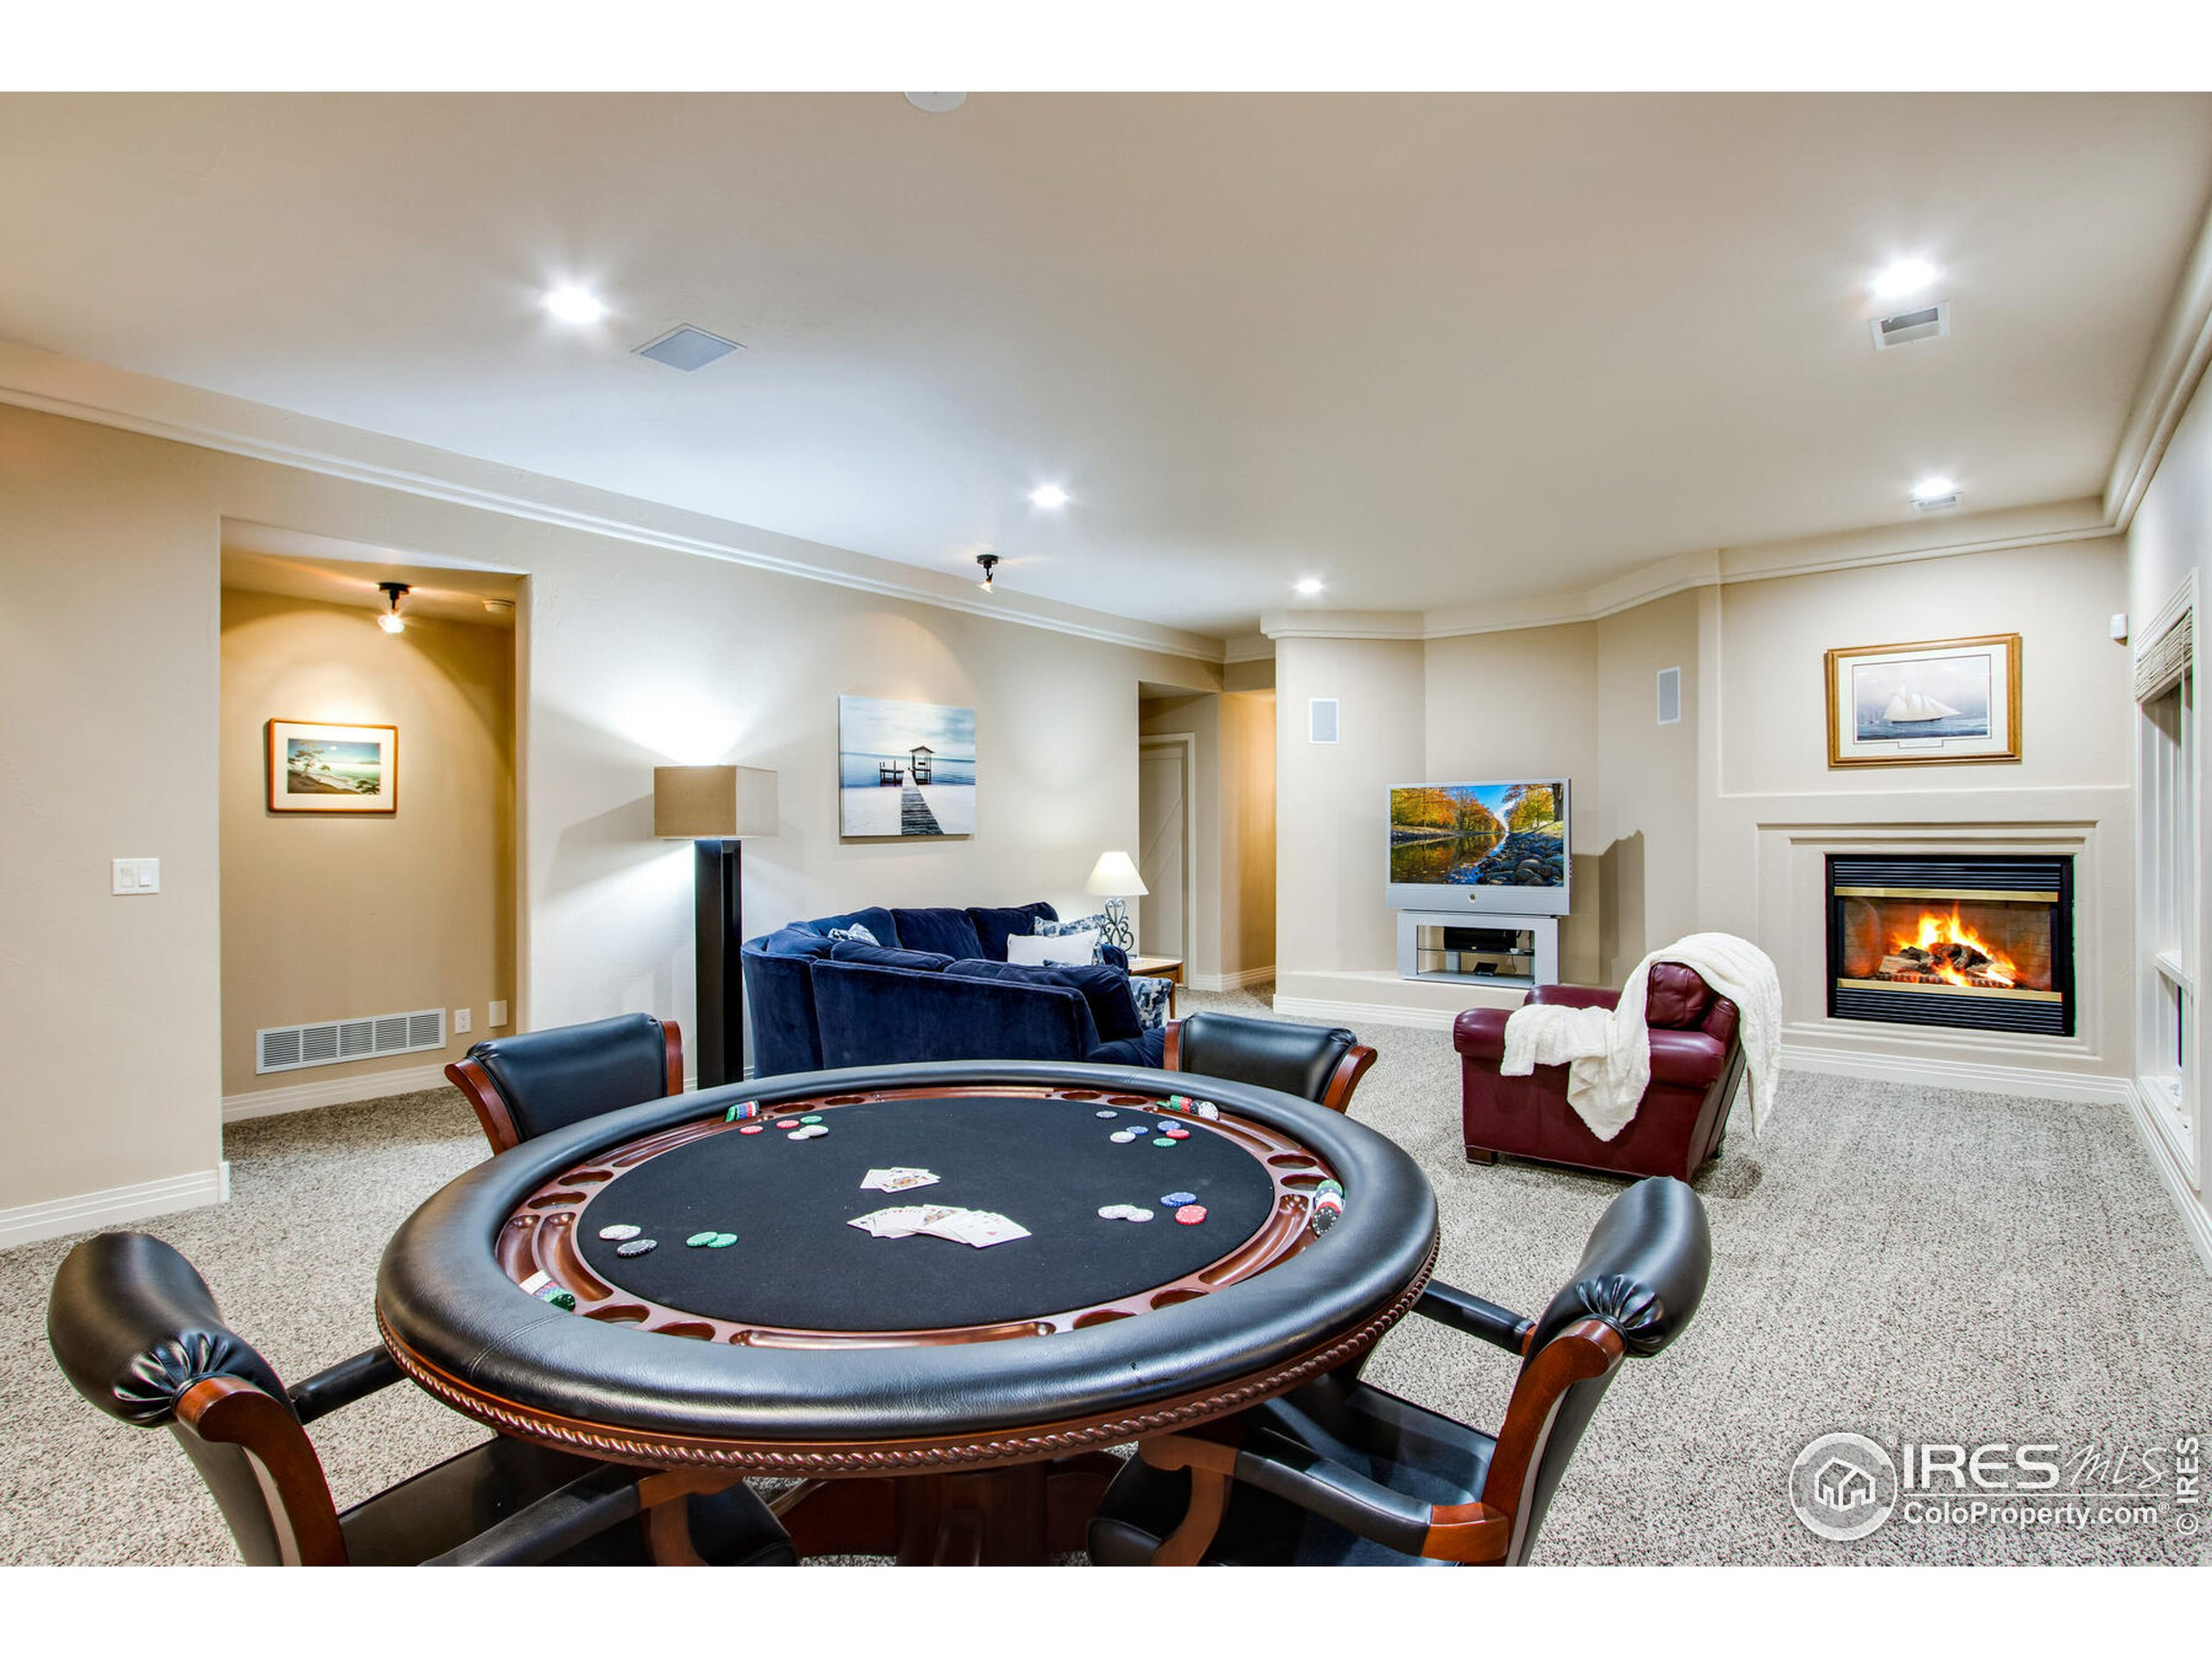 Plenty of room for card/game nights surrounded by warm fires & entertainment